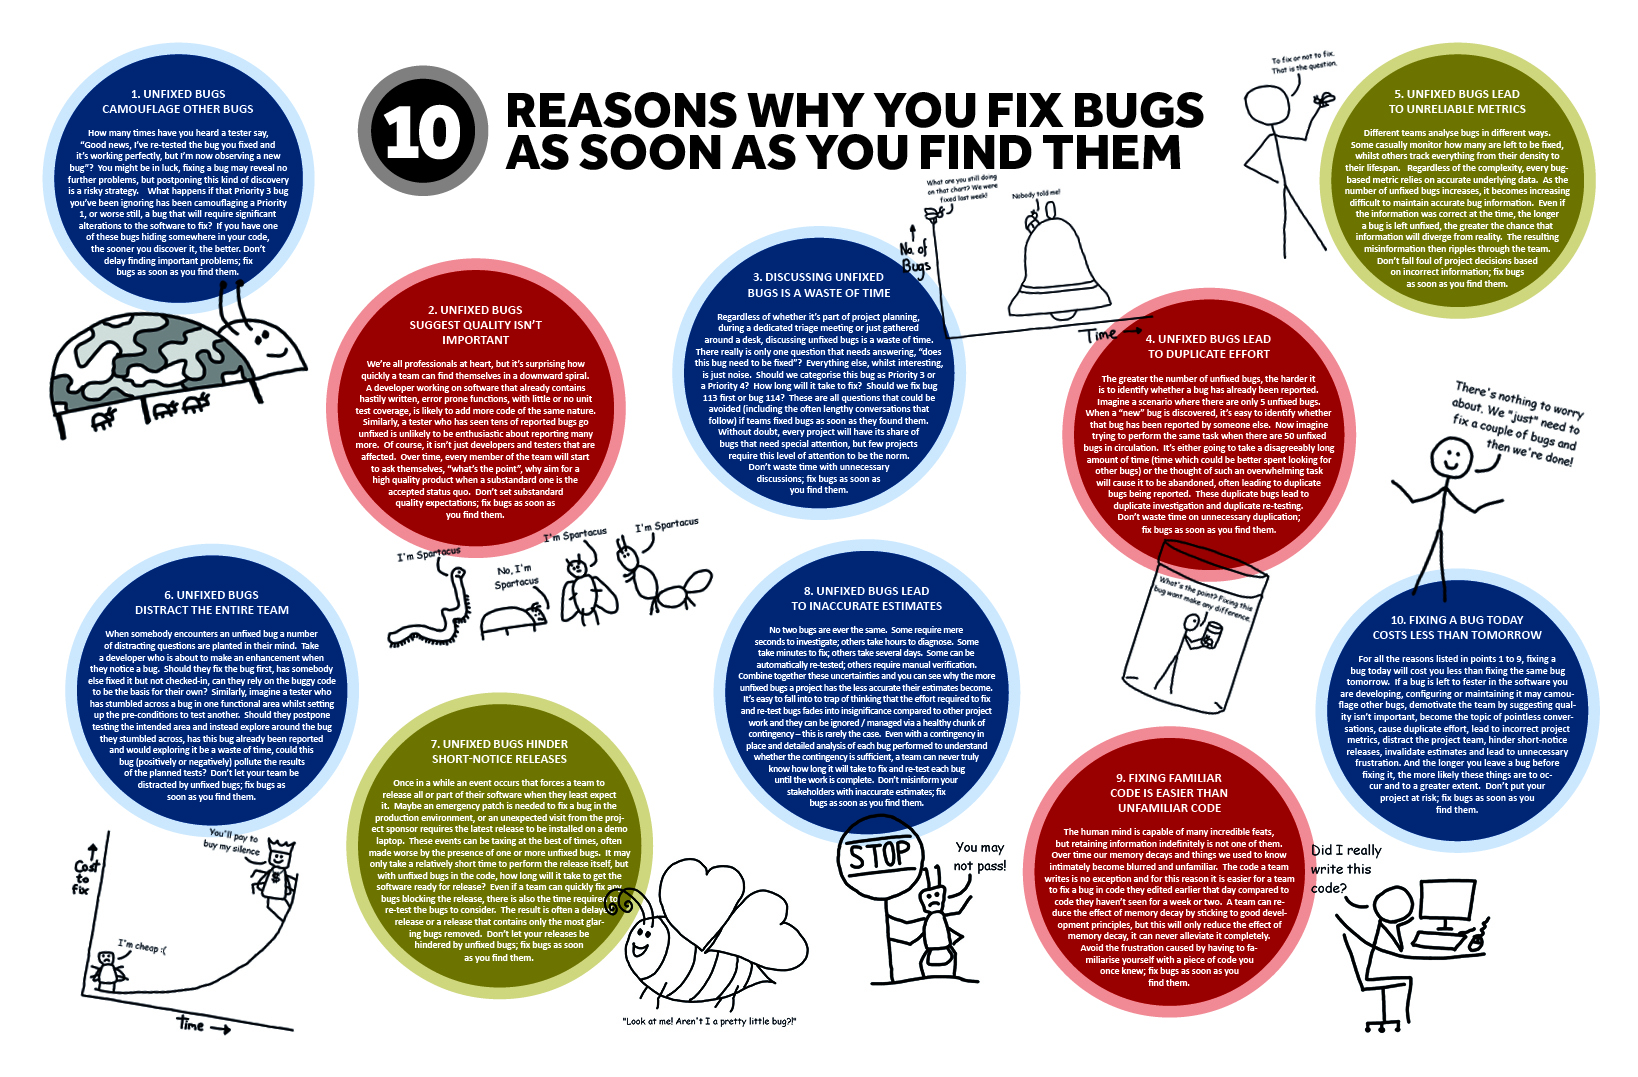 10 Reasons Why You Fix Bugs As Soon As You Find Them - Infographic